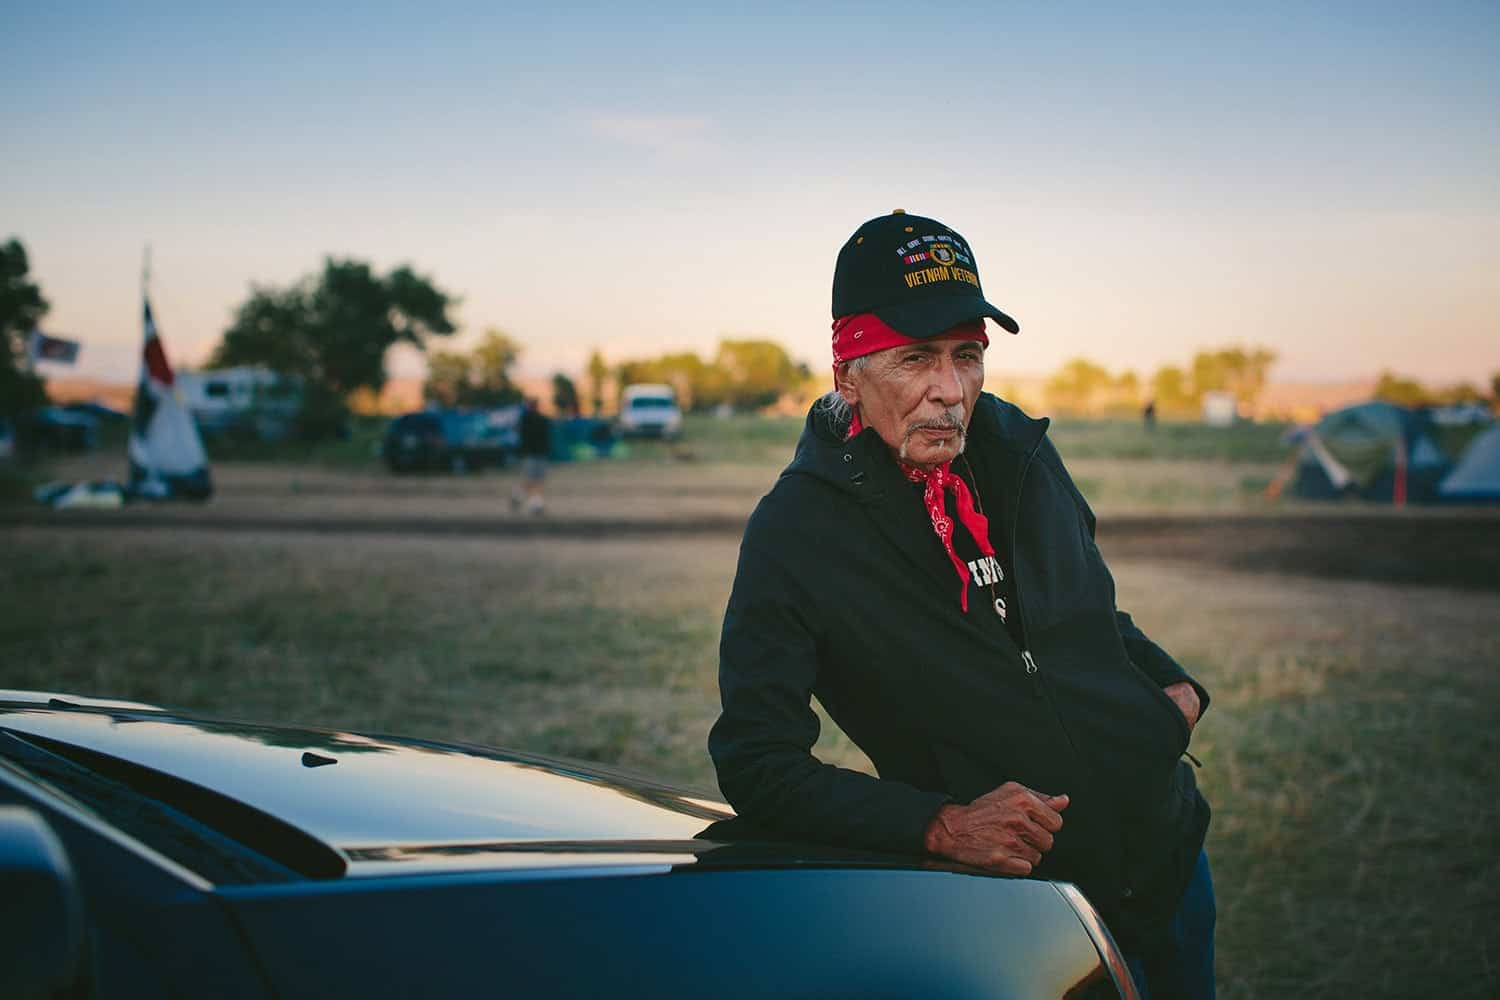 "Apesanahkwat spent 30 years as the Chairman of the Menominee Indian Tribe of Wisconsin. ""It wasn't something I chose when I came home from Vietnam,"" he said, but it launched him into a career in Washington, D.C., which is near where he now lives. When he heard of the events in North Dakota, he felt compelled to drive to the Sacred Stone camp. ""All of these things that are happening are incredibly beautiful,"" he said."